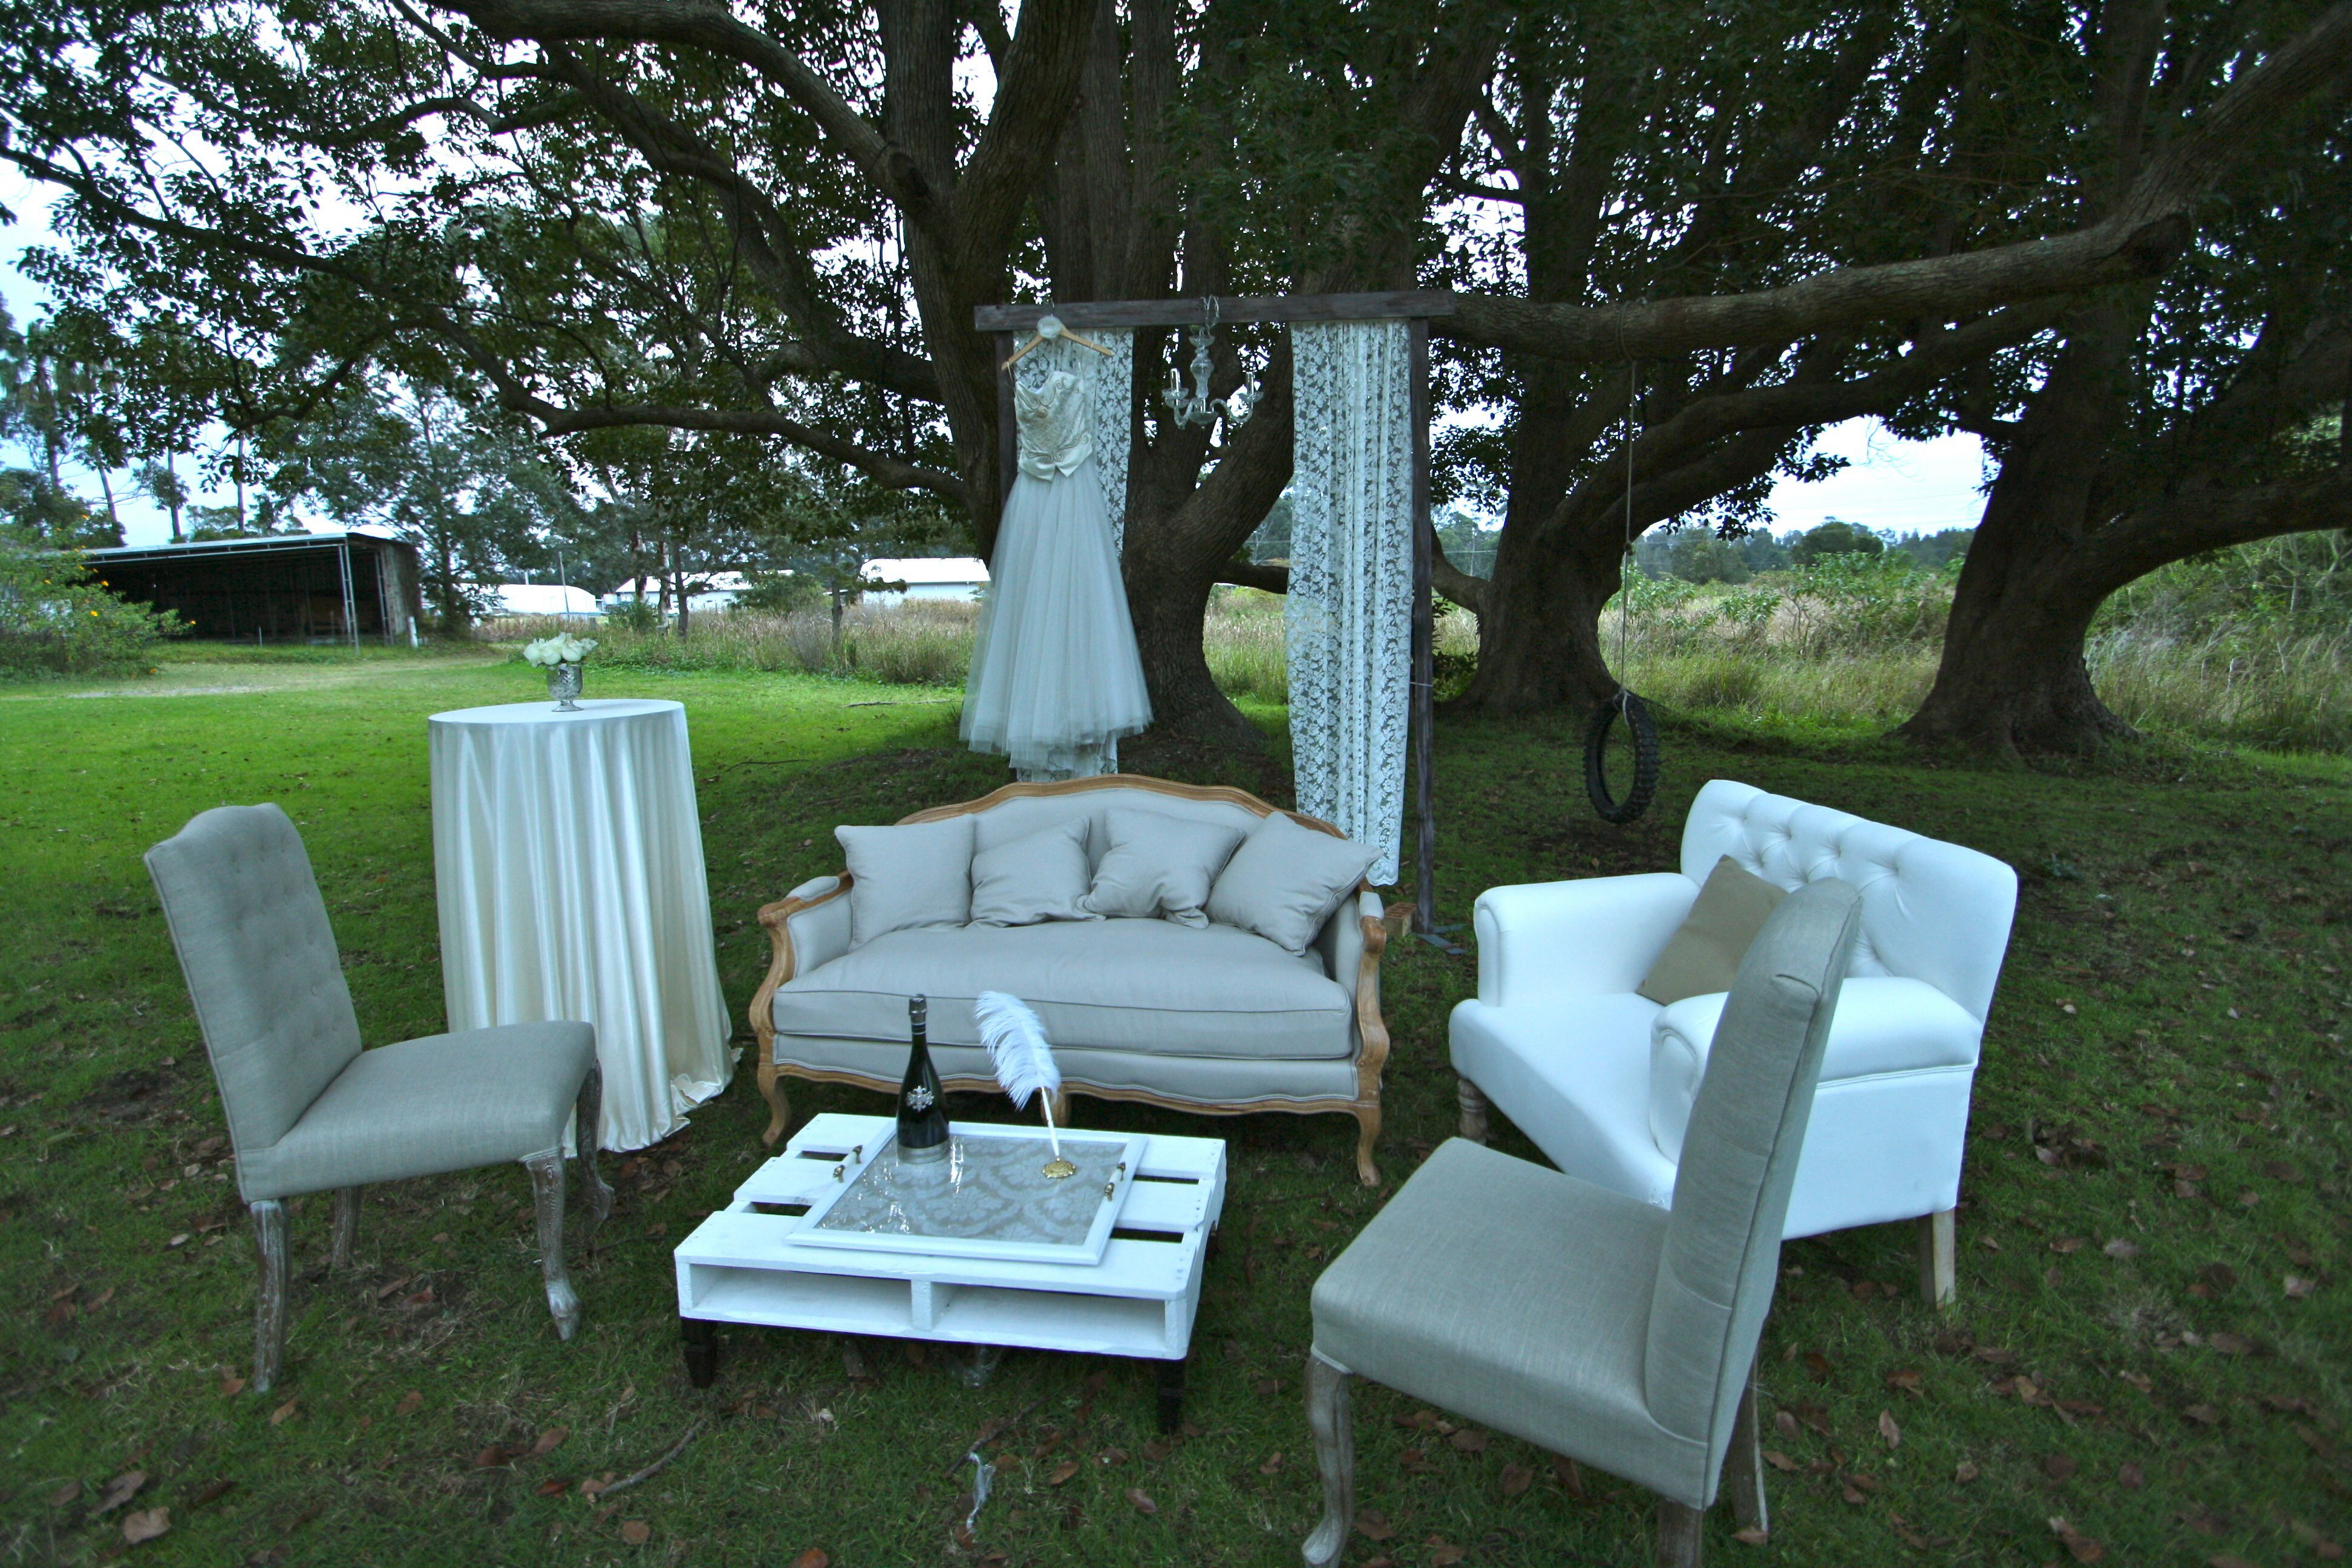 Wedding furniture hire chairs sofa tables french provincial wedding furniture hire chairs sofa tables french provincial vintage contemporary geotapseo Gallery